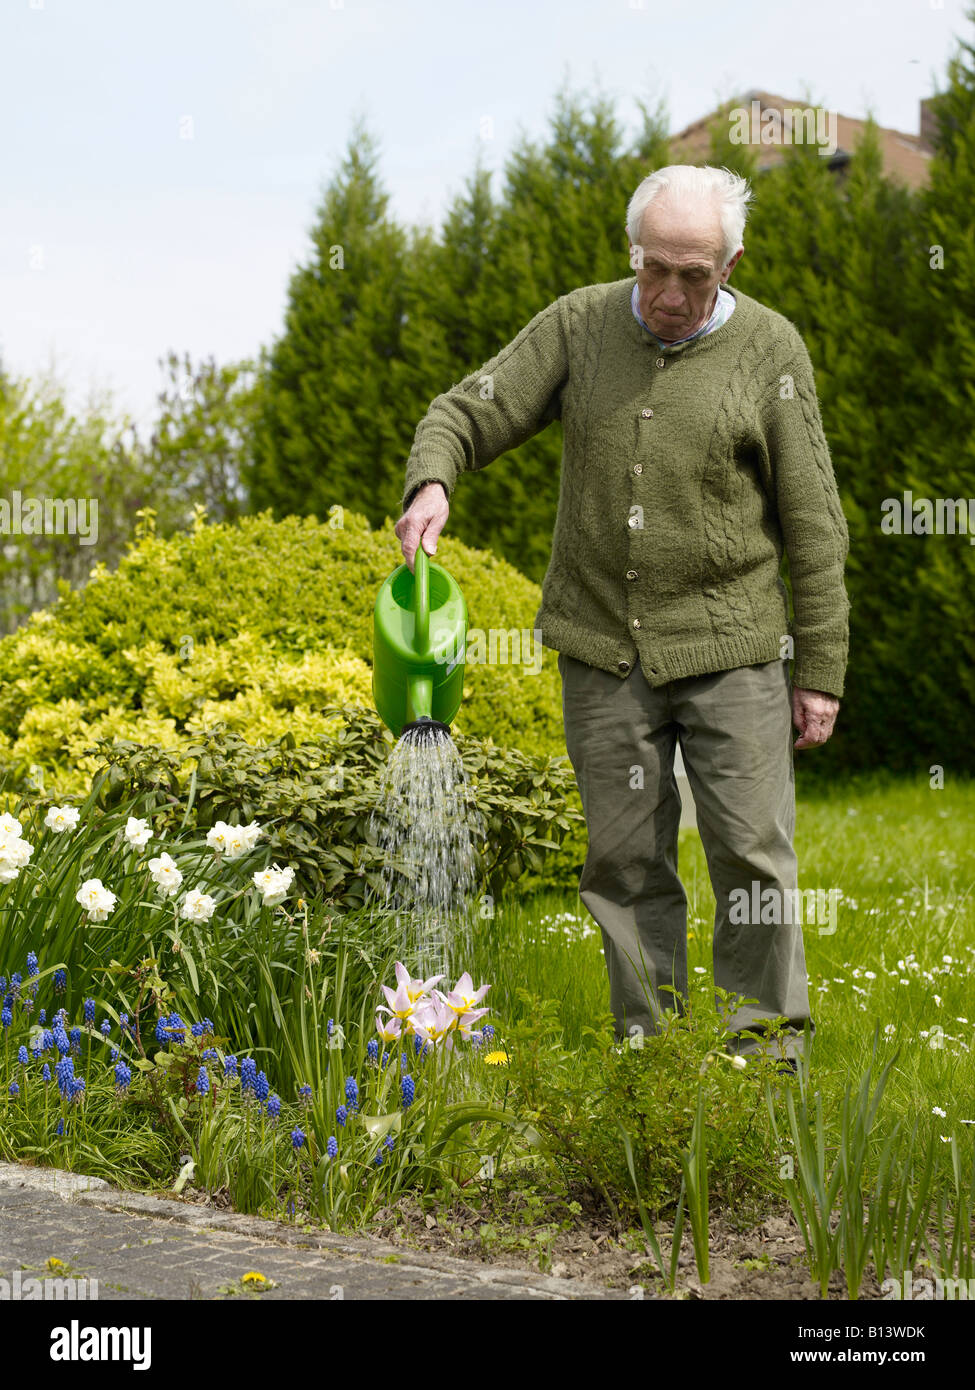 old man watering the flowers in his garden - Stock Image